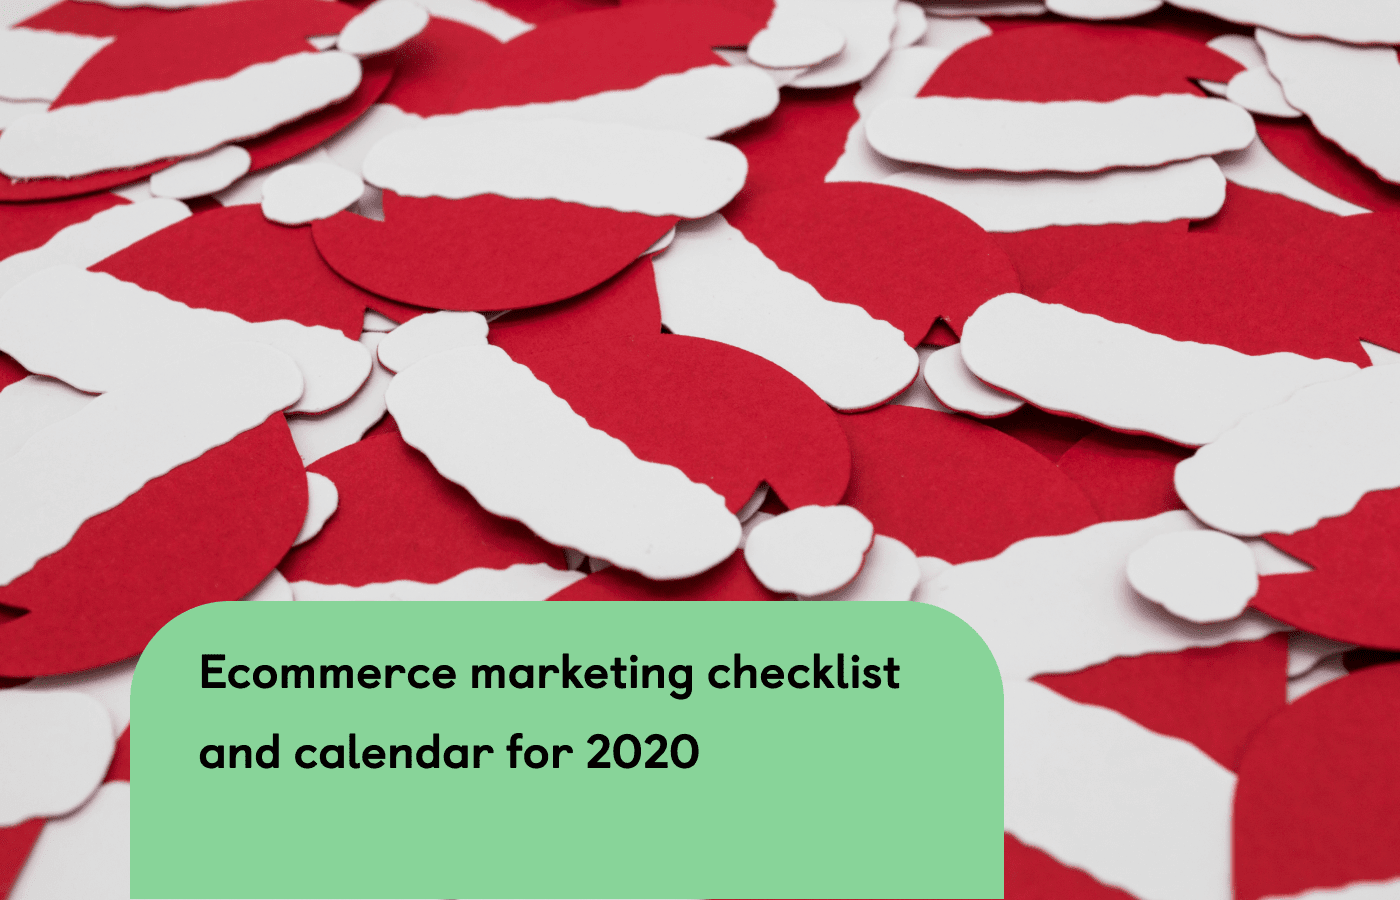 Your ecommerce marketing checklist and calendar for the 2020 holiday shopping...